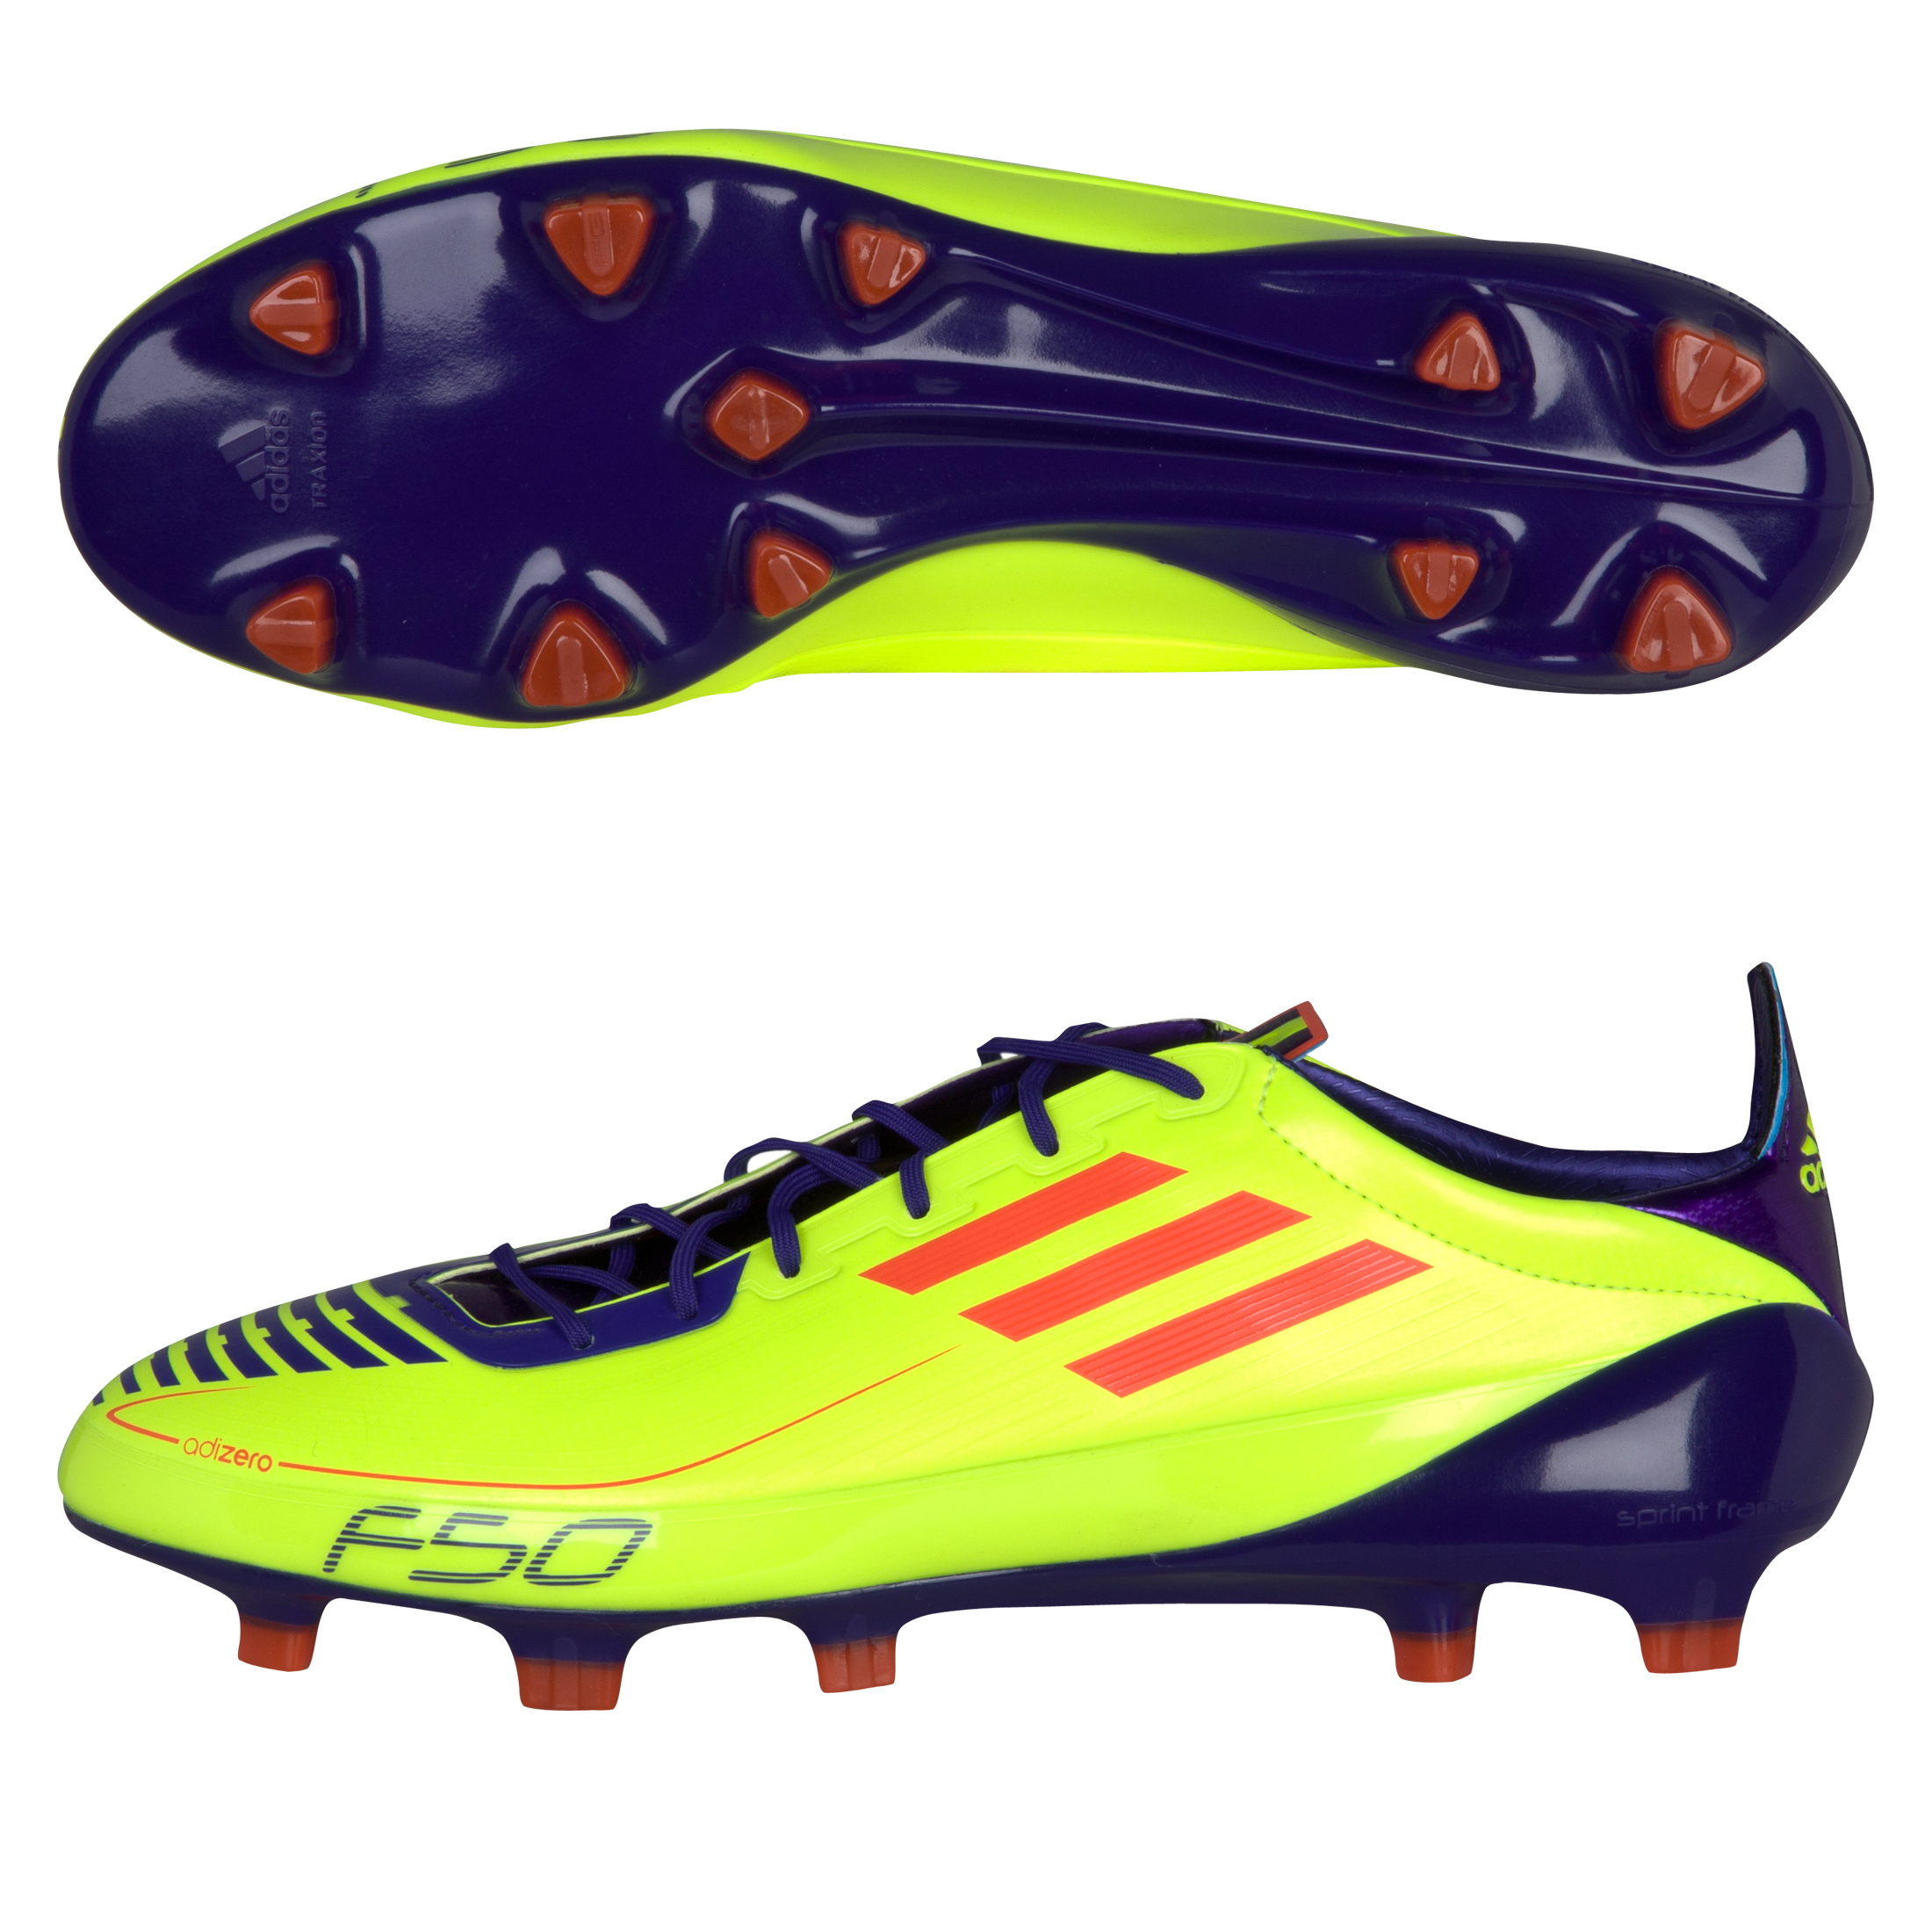 F50 adizero TRX FG Synthetic Electricity / Infrared / Anodized Purple